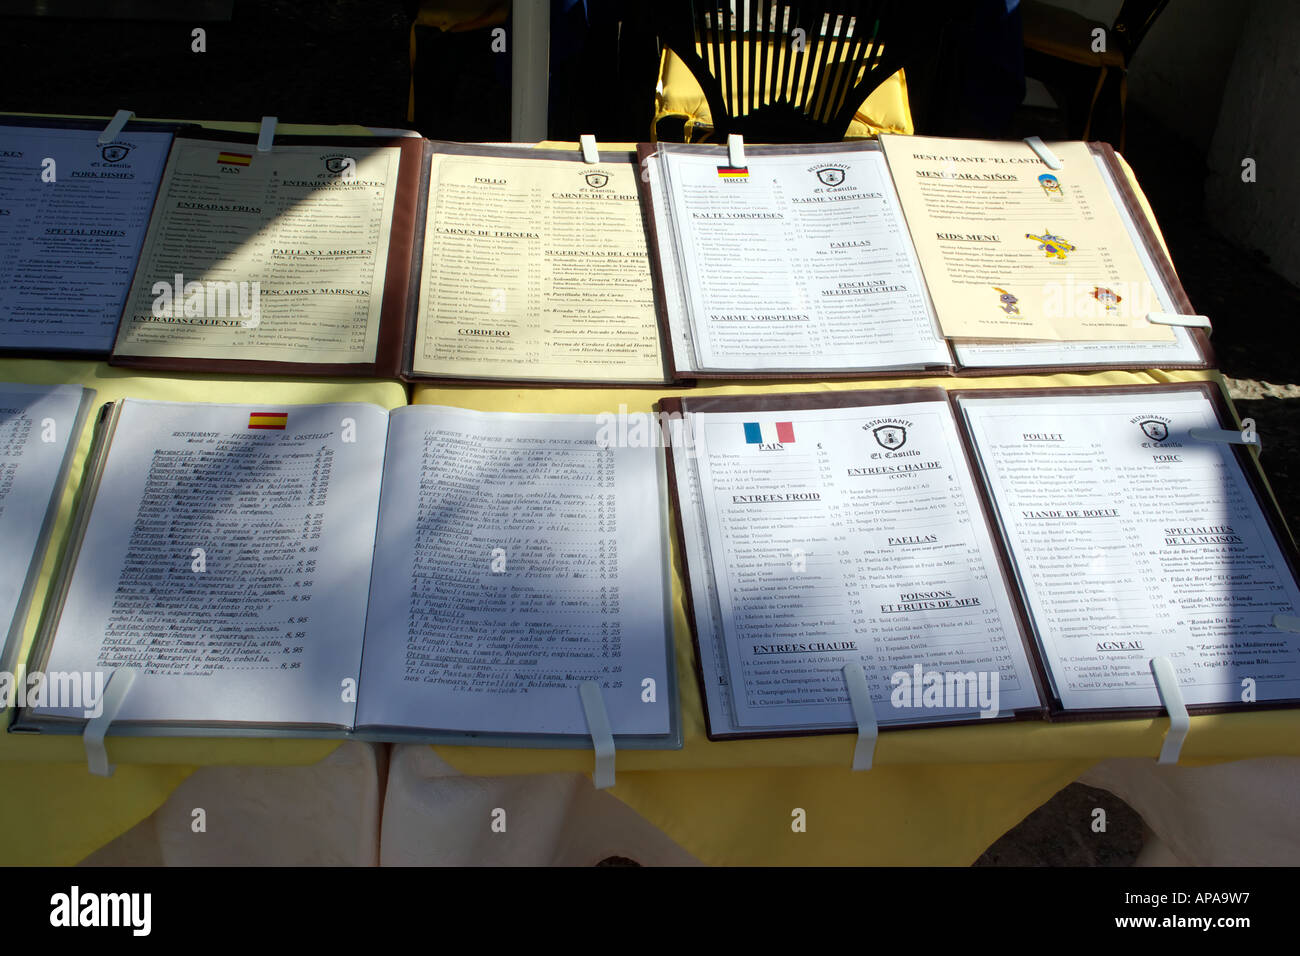 Menus in many languages outside a restaurant in Mijas, Spain - Stock Image